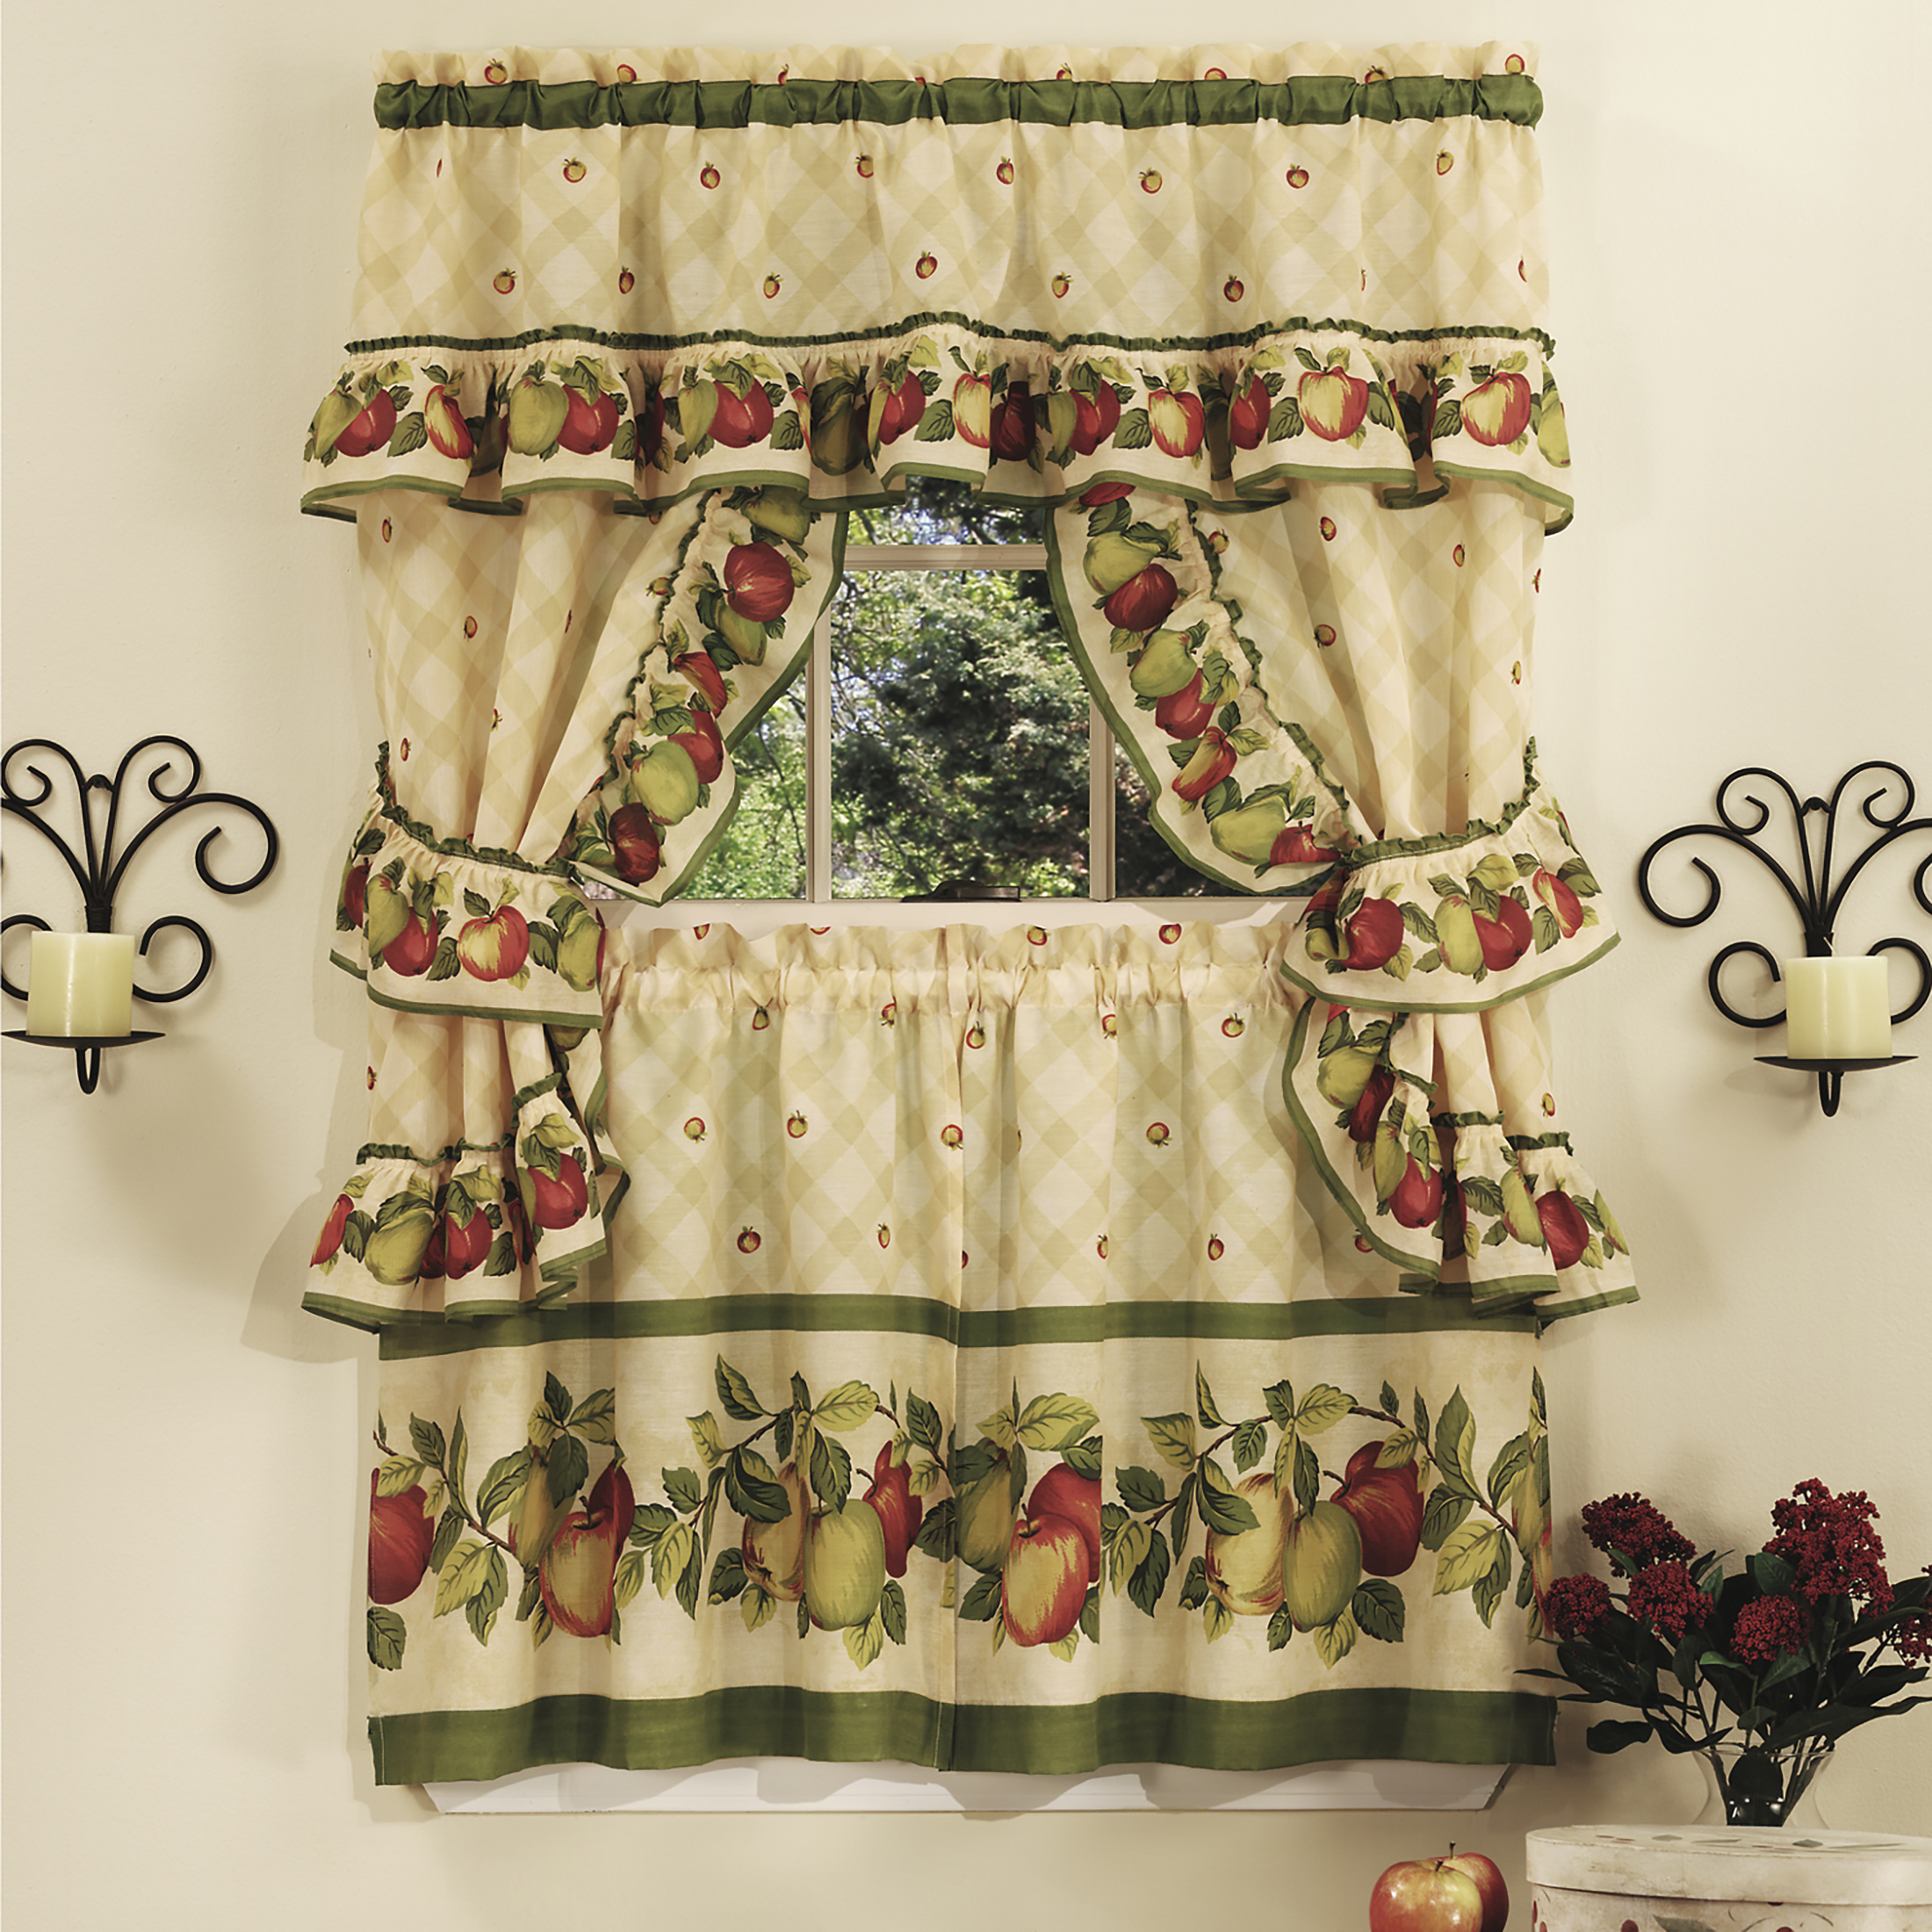 Details About 5pc Window Kitchen Curtain Cottage Set, Apple Vines, Tiers, Valance, Tiebacks Inside Most Up To Date Red Delicious Apple 3 Piece Curtain Tiers (View 14 of 20)